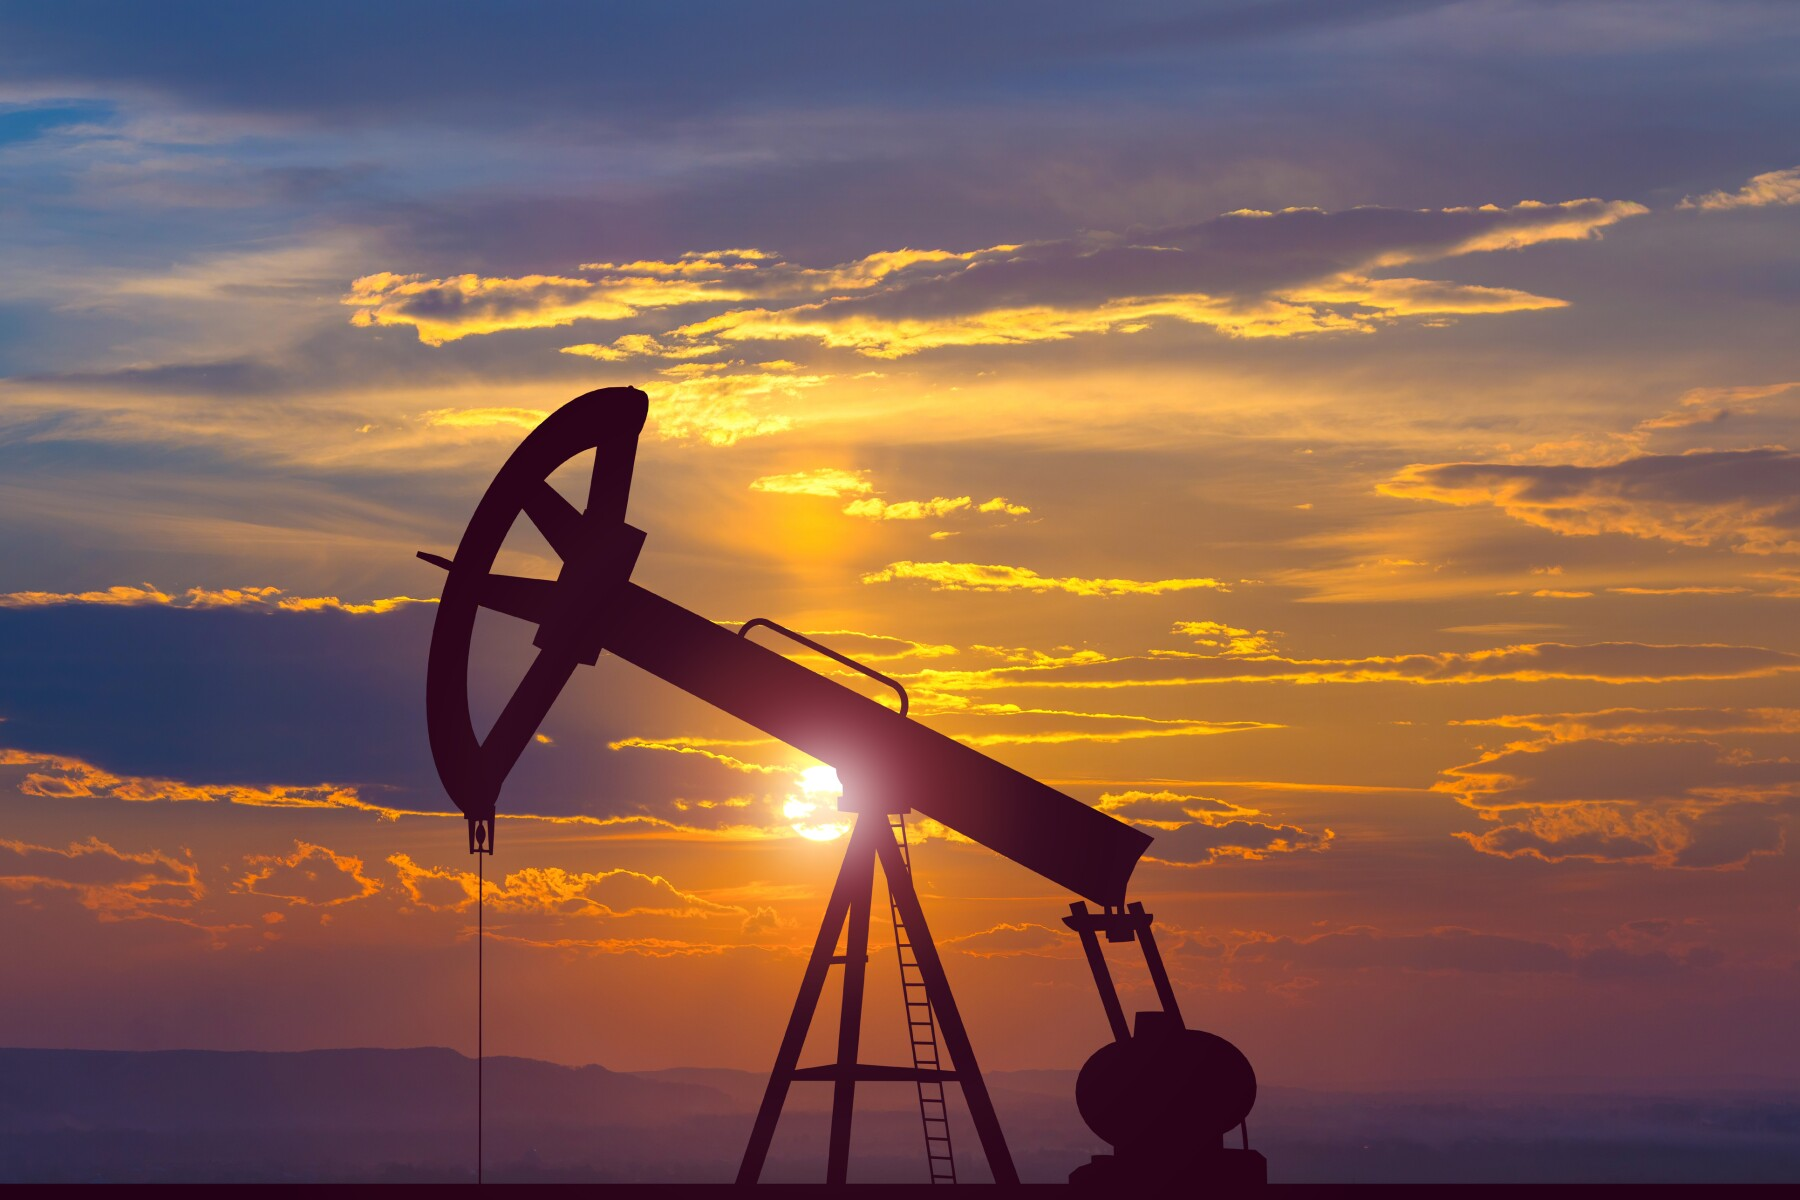 The oil pump on the background of the sunset